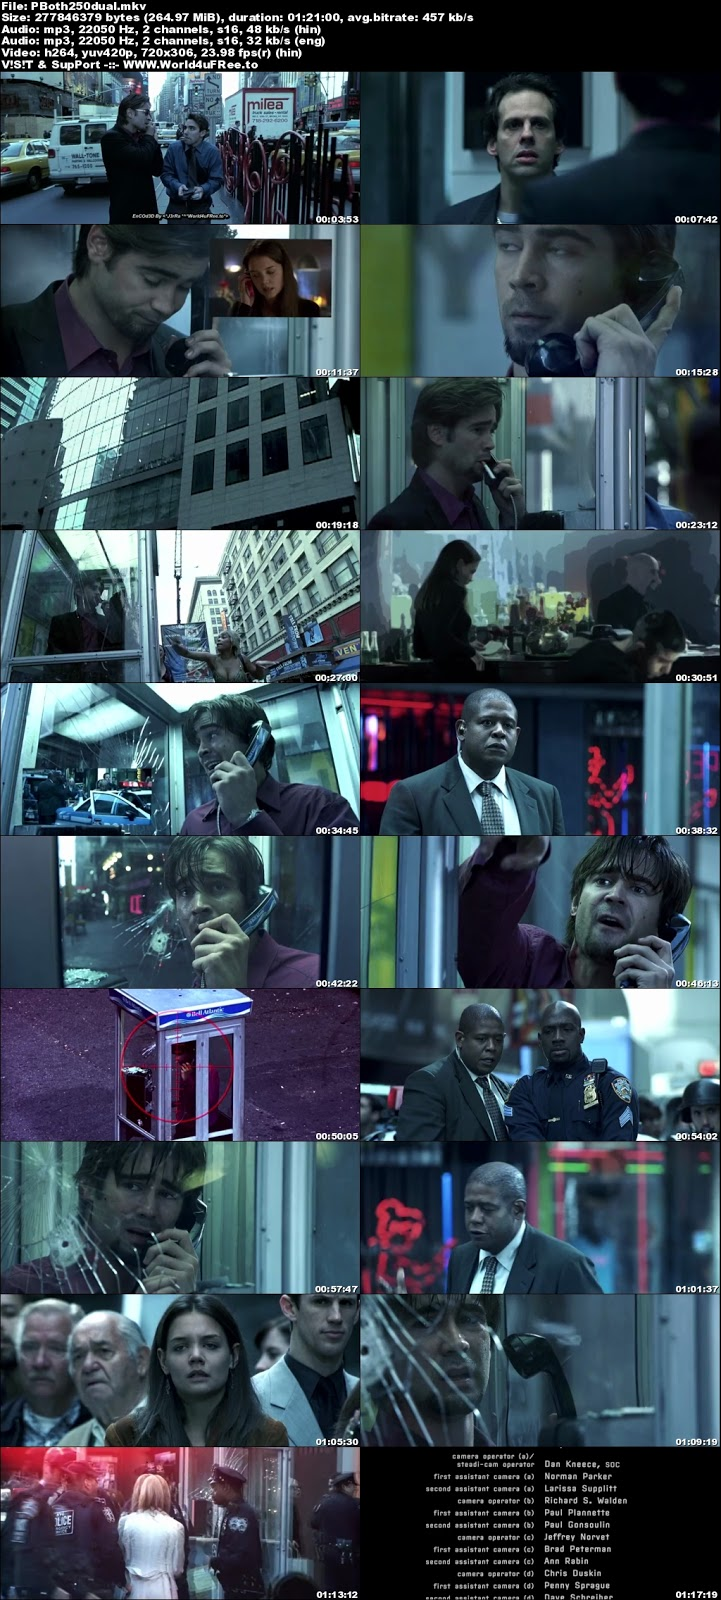 Phone Booth 2002 Dual Audio BRRip 480p 250Mb x264 world4ufree.best hollywood movie Phone Booth 2002 hindi dubbed dual audio 480p brrip bluray compressed small size 300mb free download or watch online at world4ufree.best